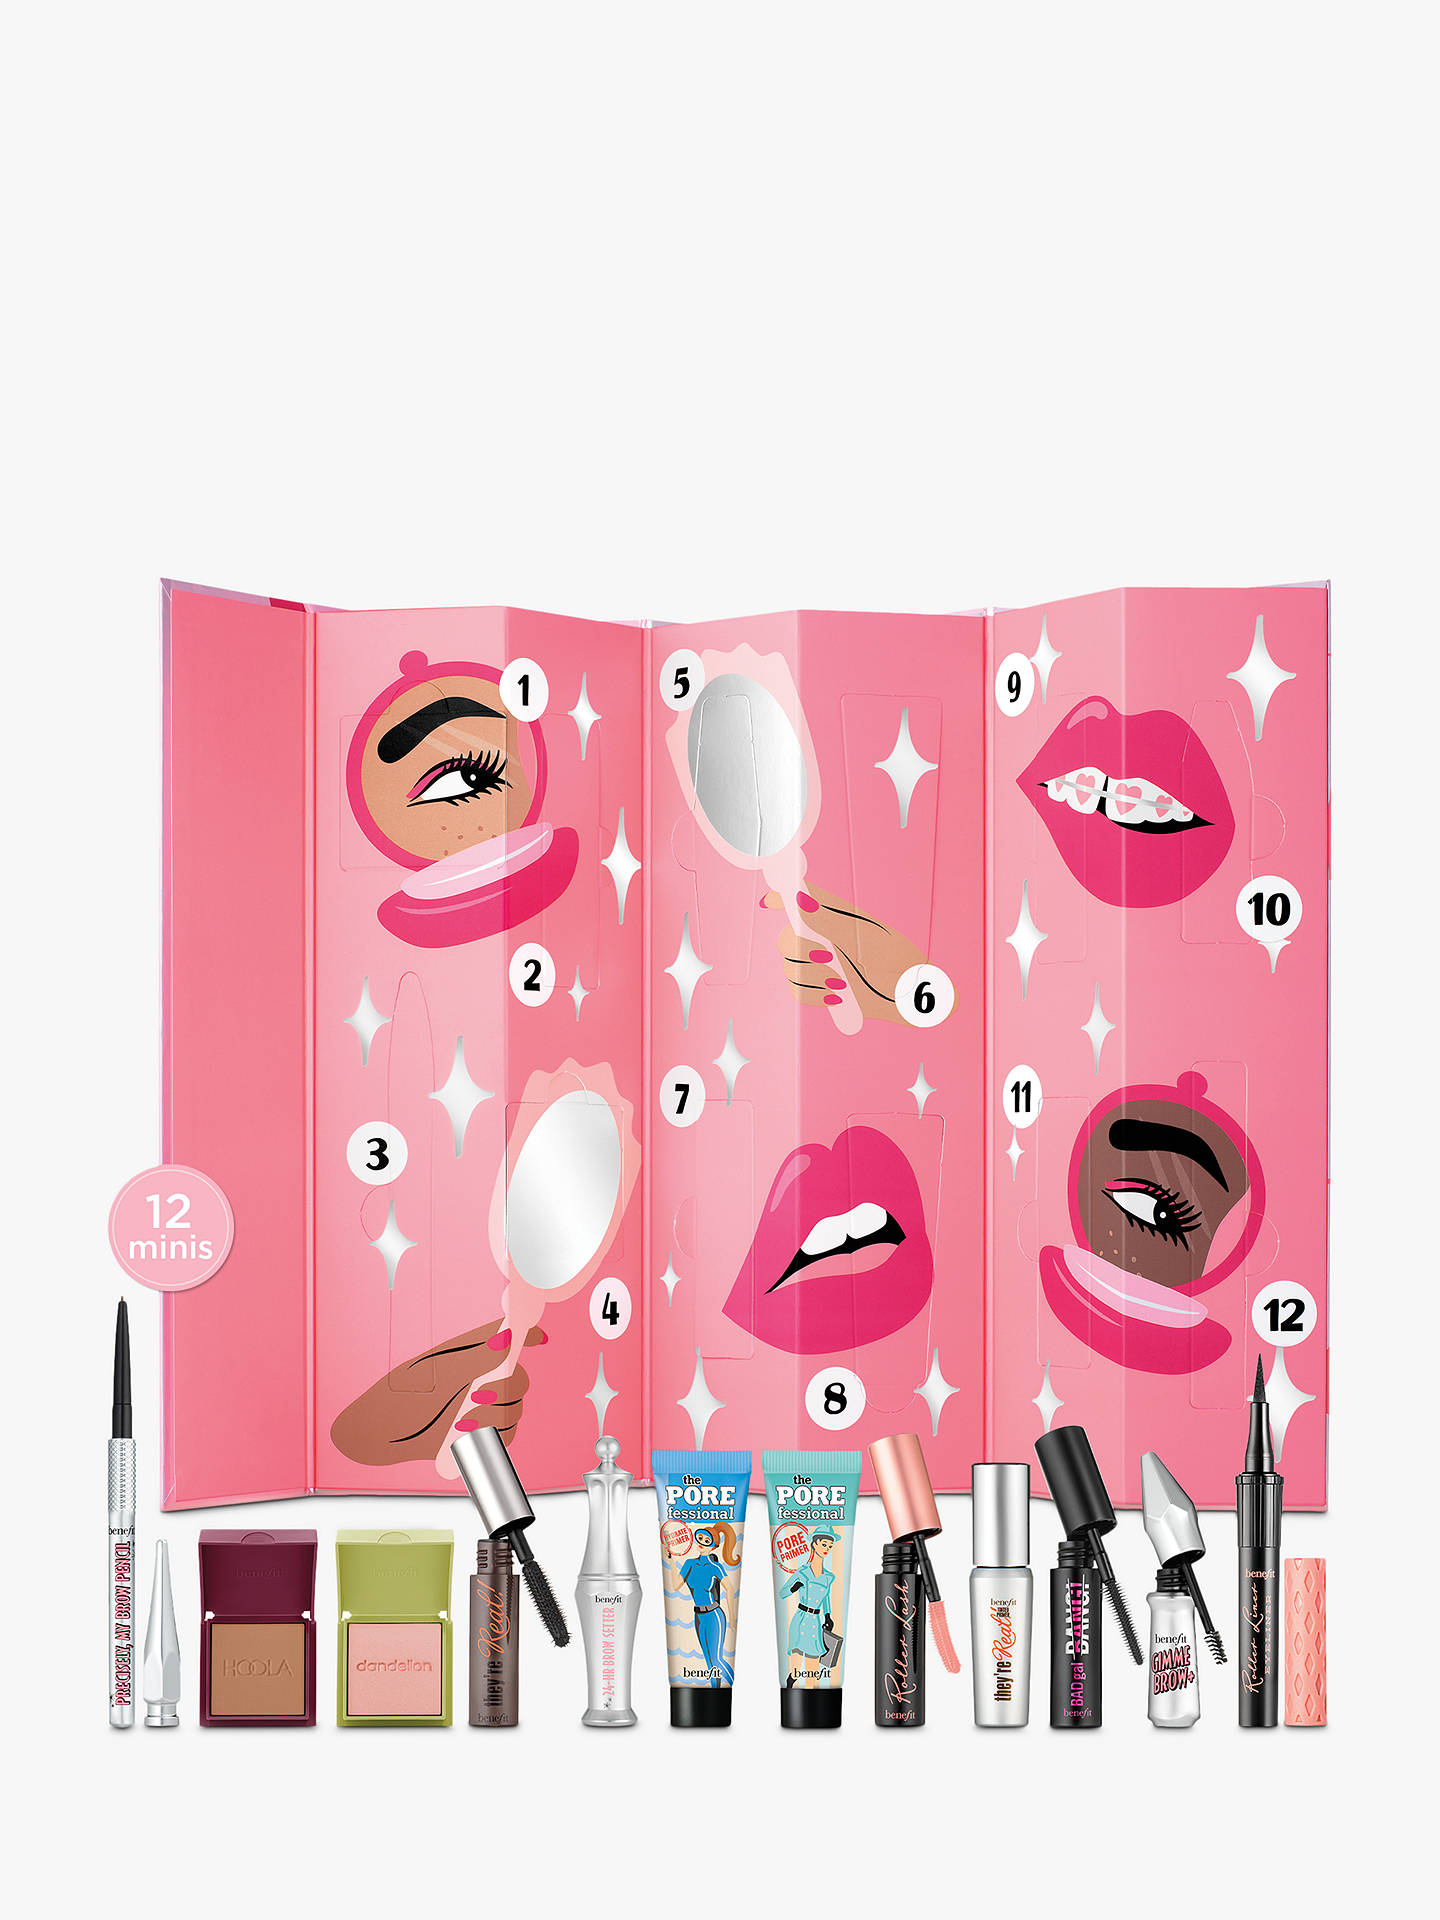 Buy Benefit Shake Your Beauty Advent Calendar Online at johnlewis.com